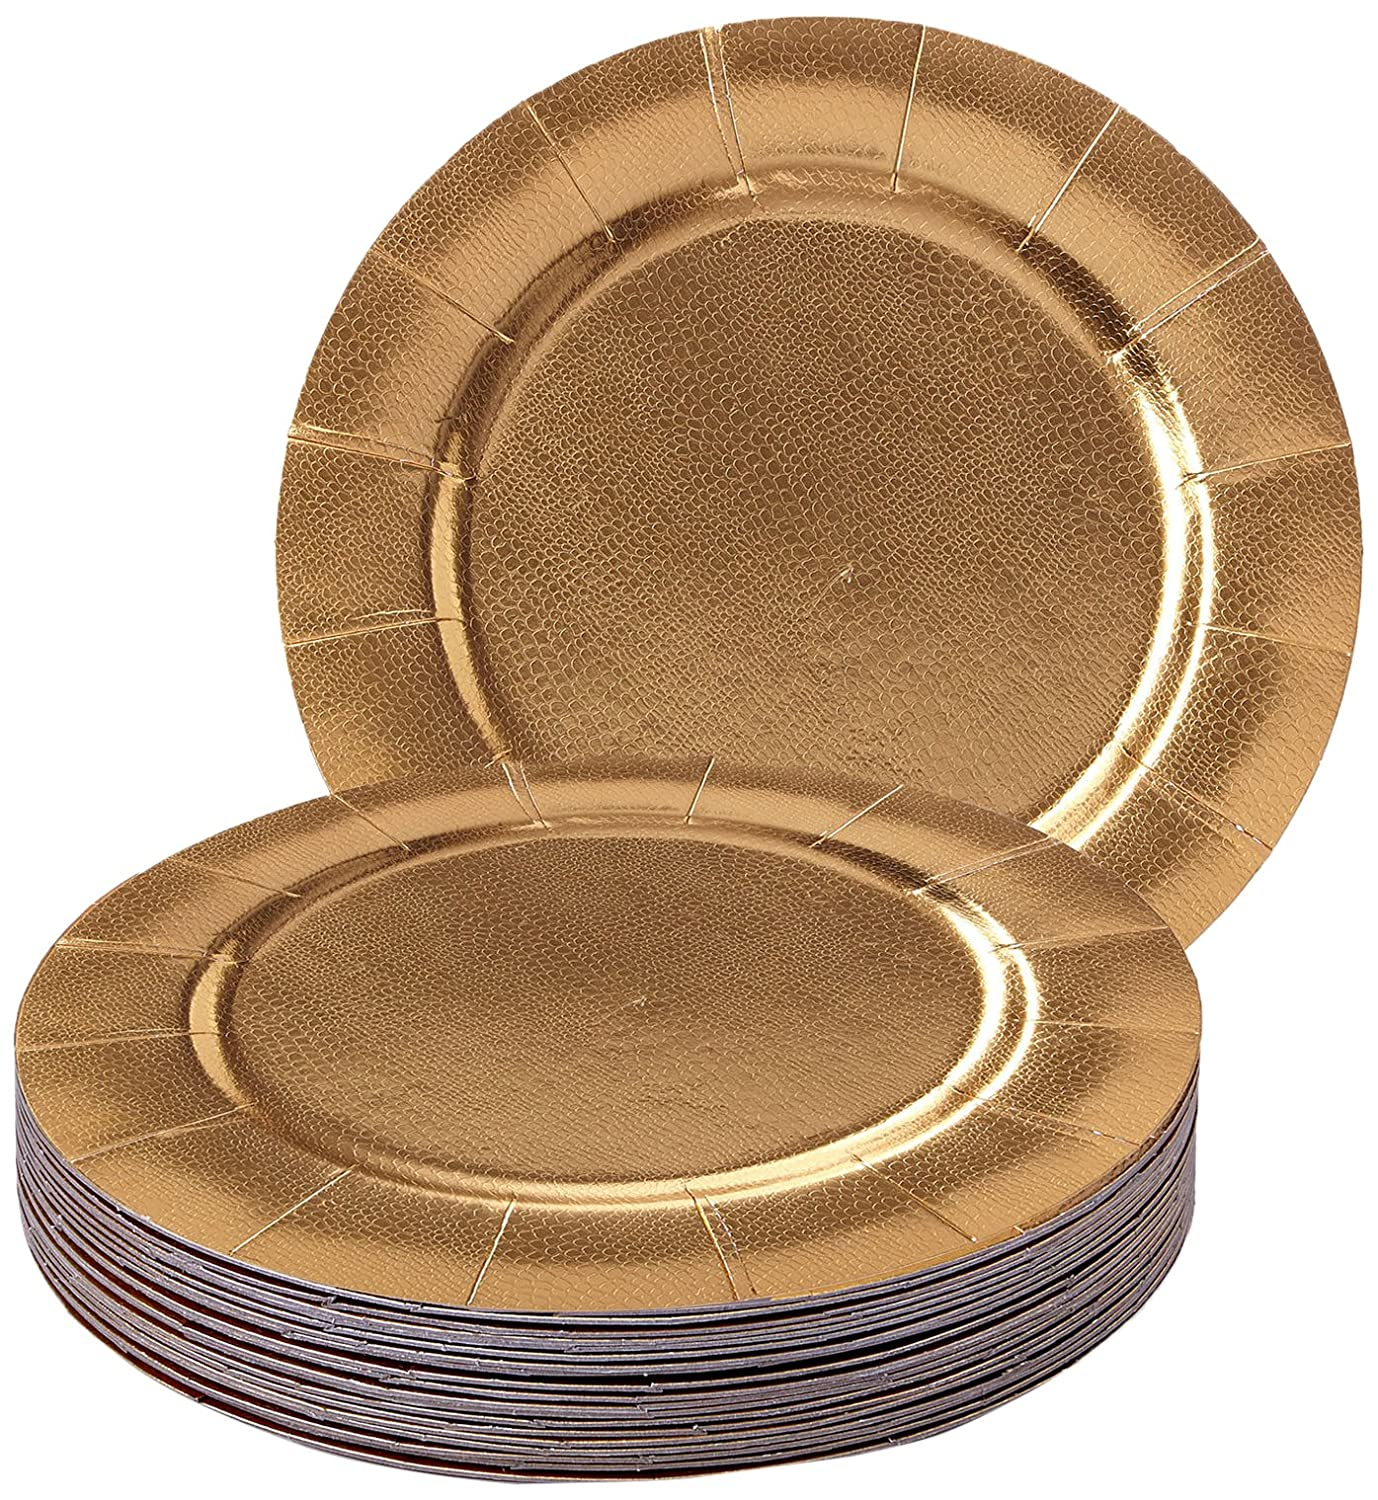 DISPOSABLE ROUND CHARGER PLATES - 20pc (Metallic/Gold) 1824-SiS